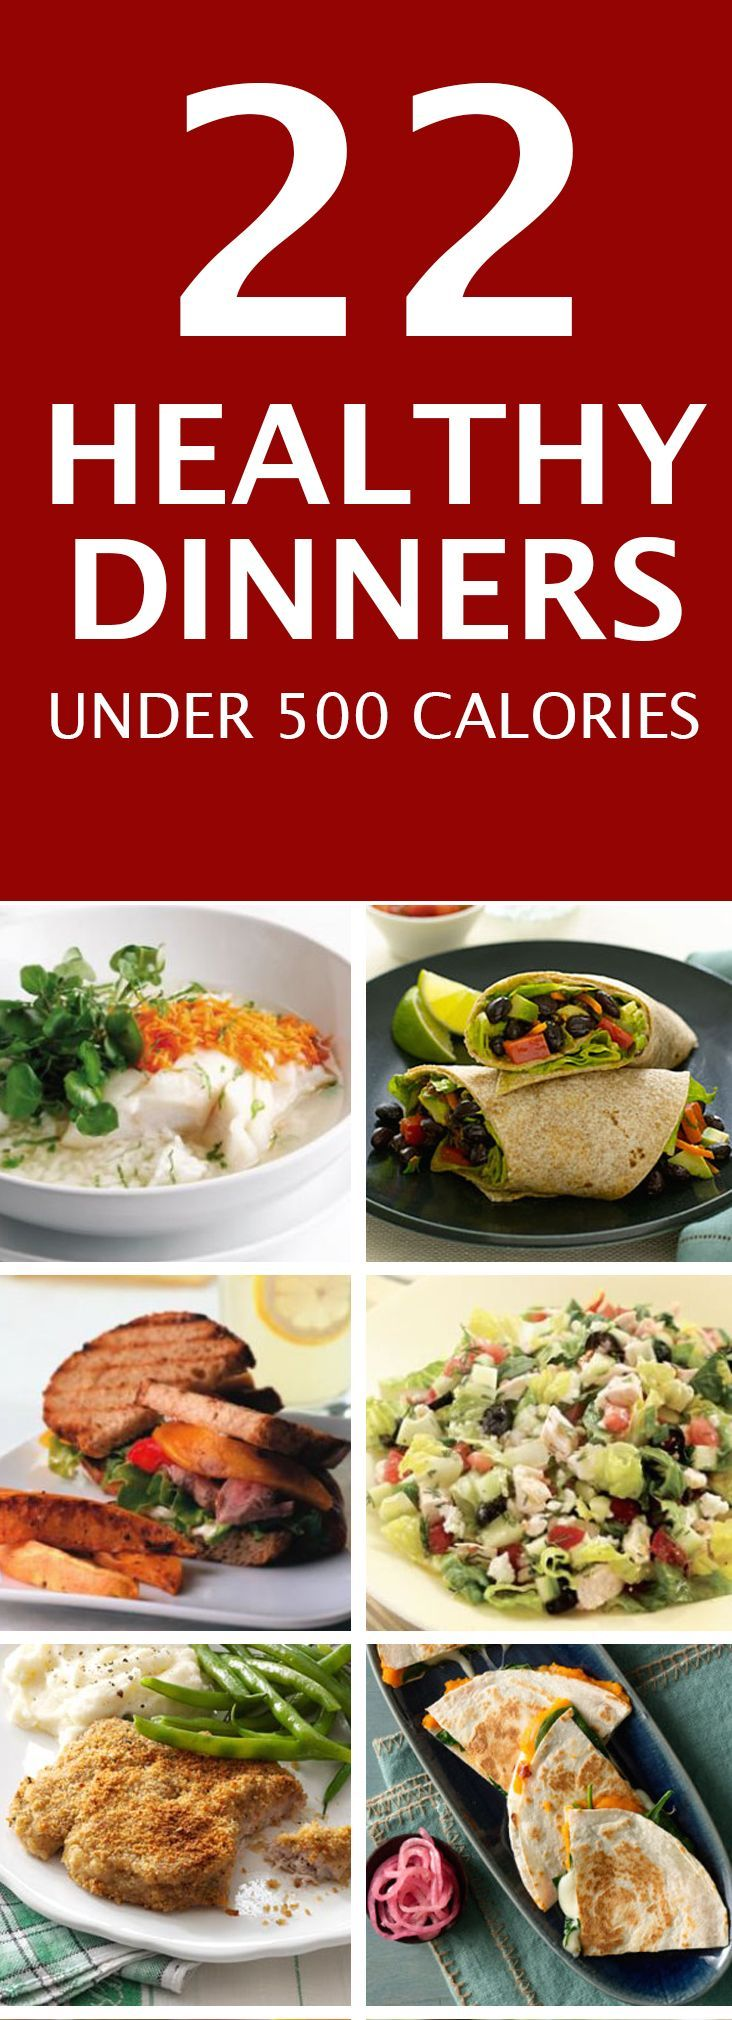 Want some easy to make and healthy dinners for two? Here are 22 meals to help you achieve your 500 calorie diet goals. Complete with videos and recipes